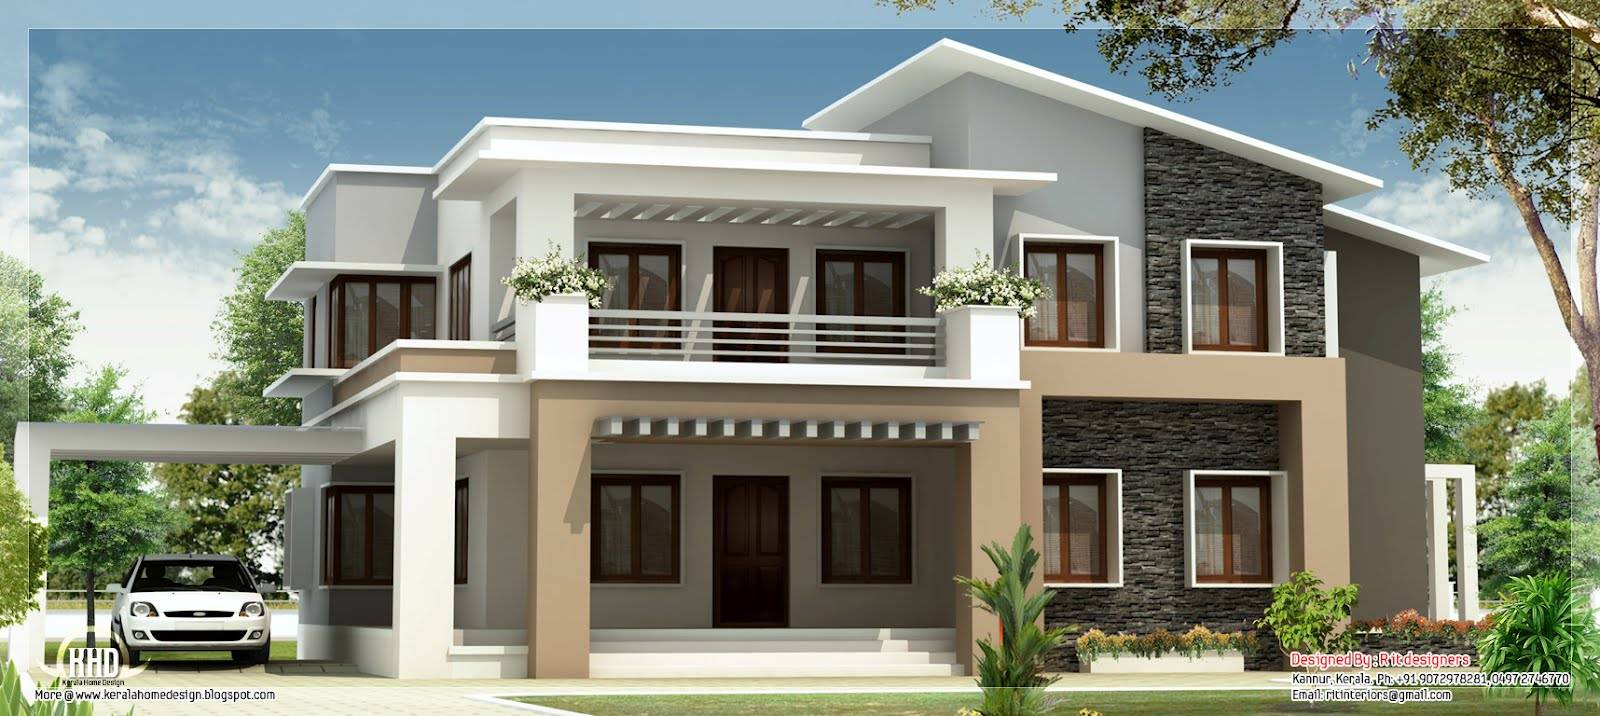 modern mix double floor home design indian house plans house - Modern Home Designs Floor Plans